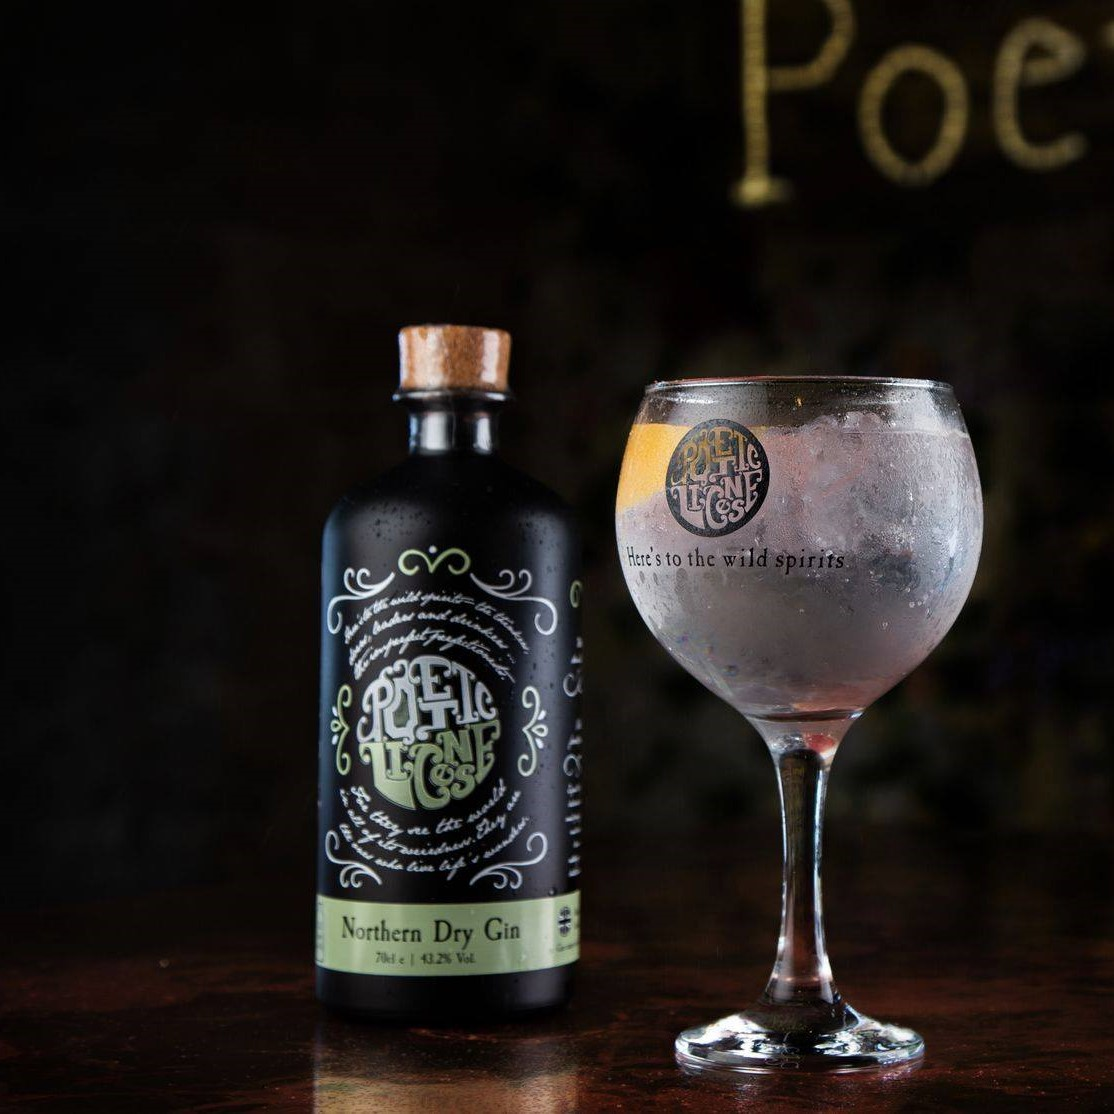 Poetic Licence Northern Dry Gin